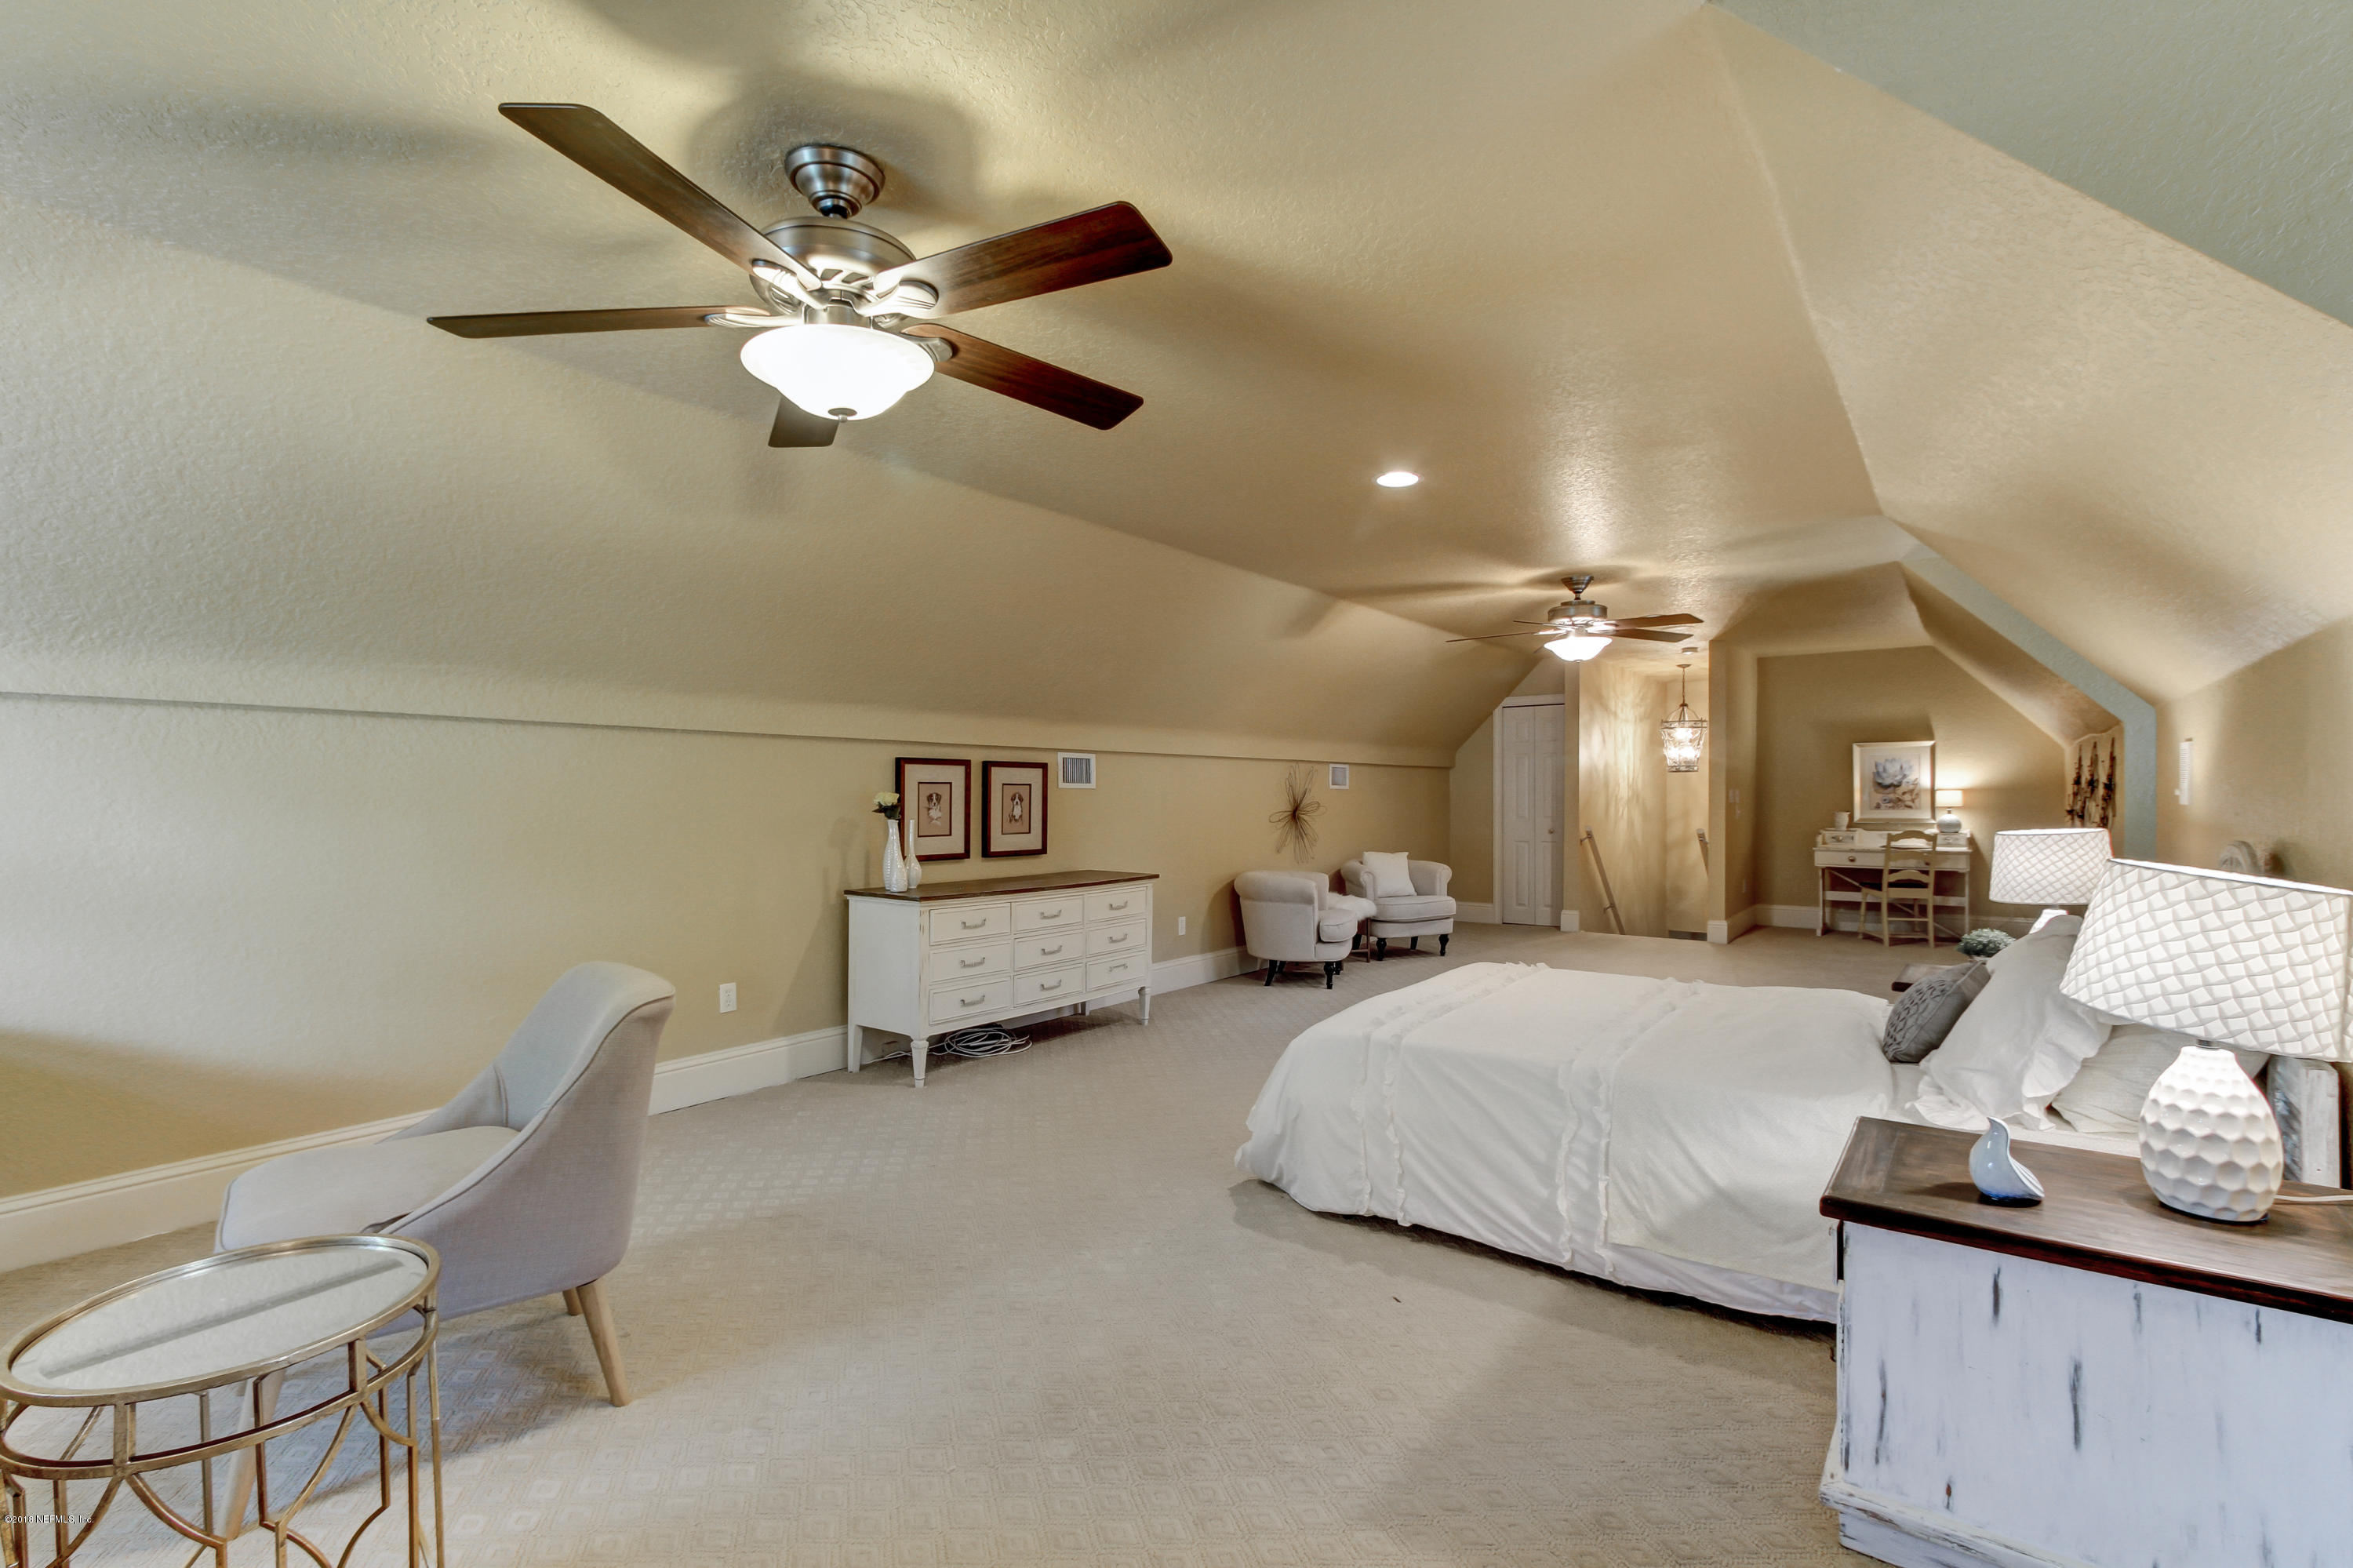 9516 WATERFORD, JACKSONVILLE, FLORIDA 32257, 4 Bedrooms Bedrooms, ,2 BathroomsBathrooms,Residential - single family,For sale,WATERFORD,932812